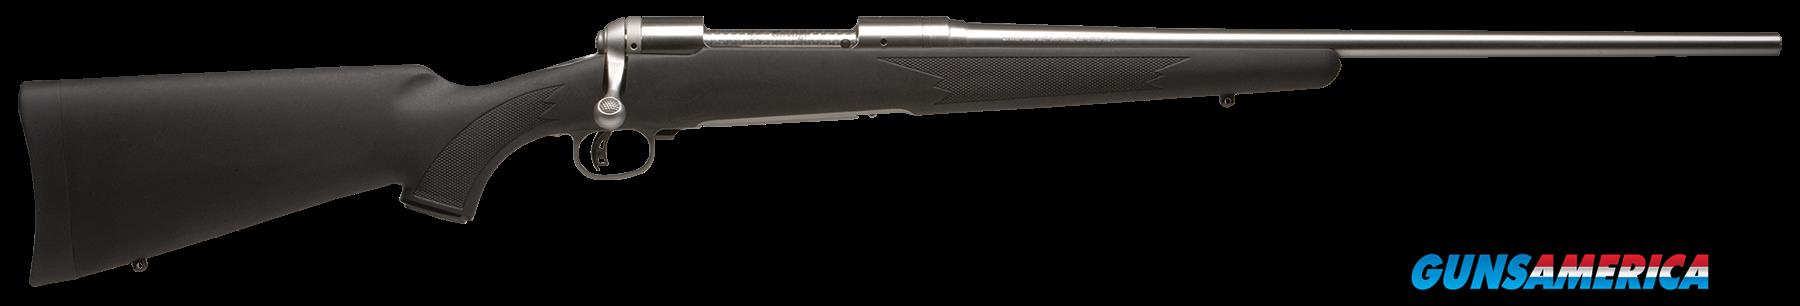 "Savage 17780 16/116 FCSS Bolt 270 WSM 24"" 2+1 Accustock Black Stk Stainless Steel  Guns > Rifles > S Misc Rifles"